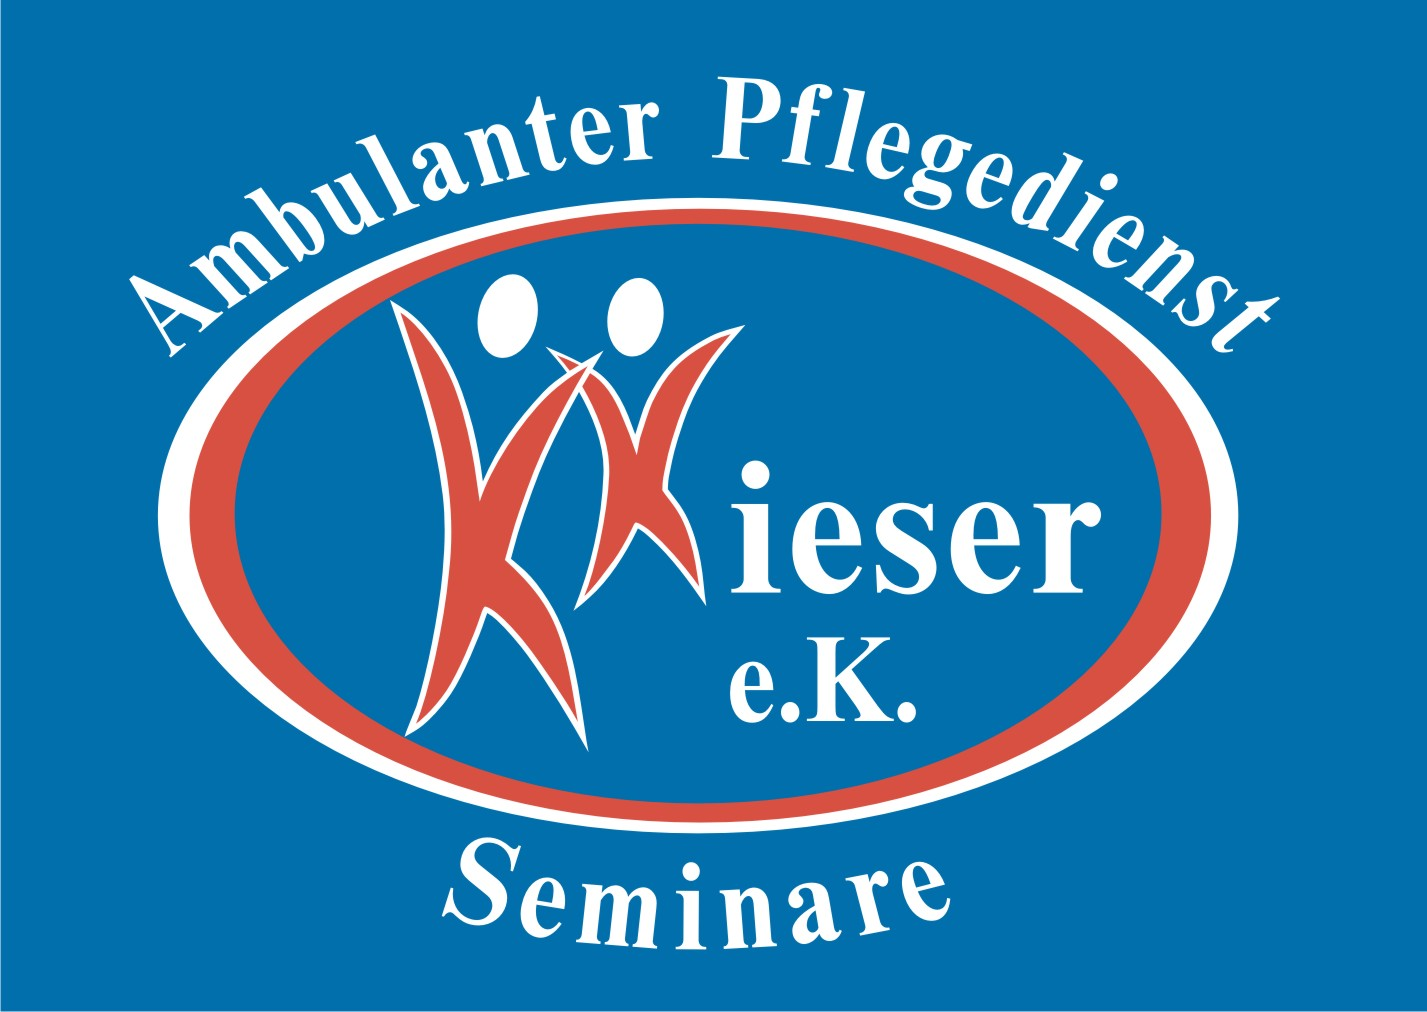 Ambulanter Pflegedienst Kieser e.K.